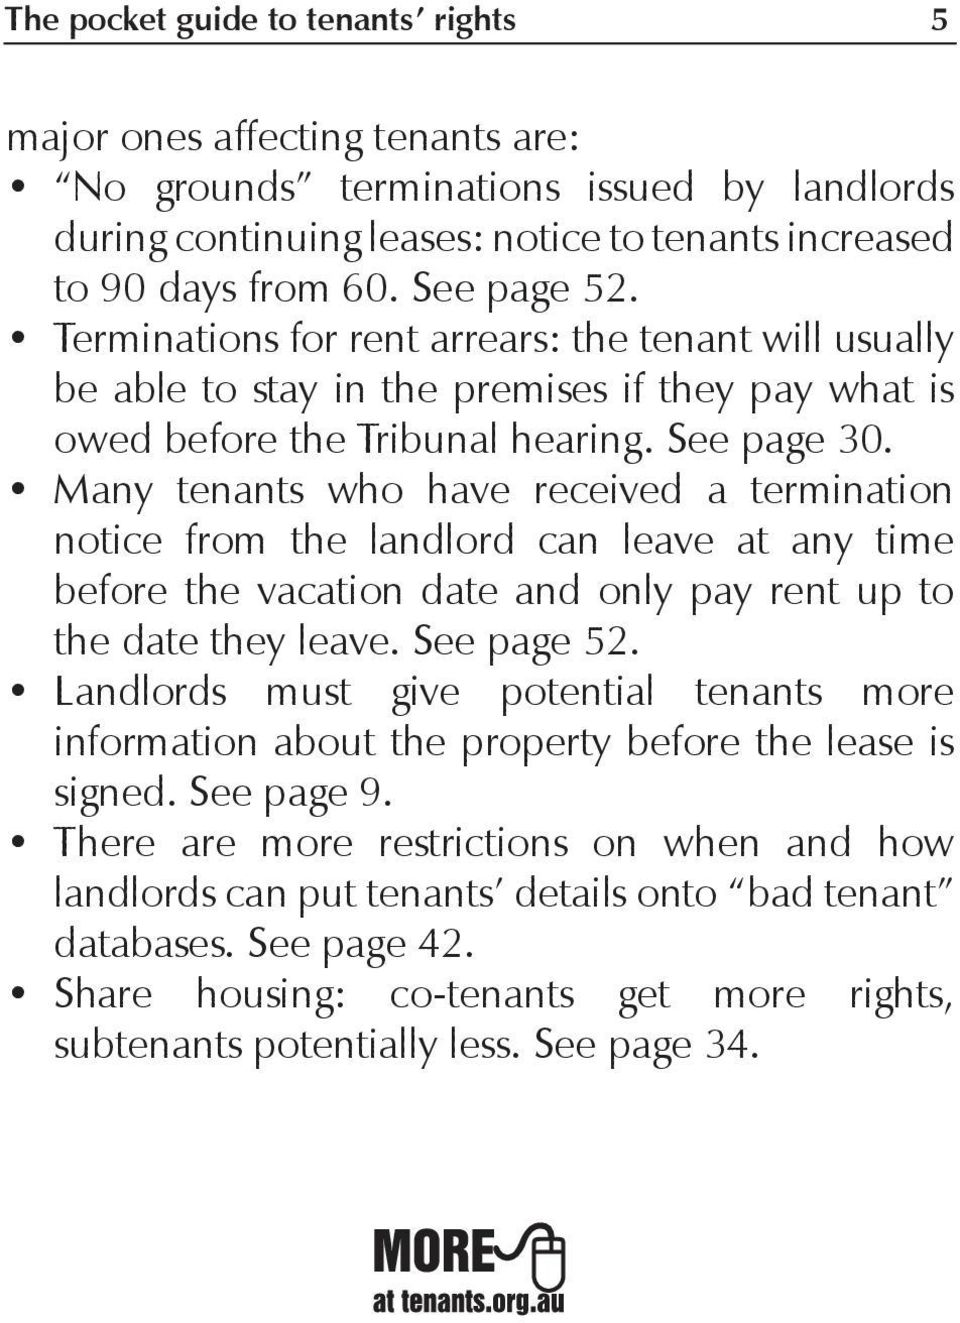 Many tenants who have received a termination notice from the landlord can leave at any time before the vacation date and only pay rent up to the date they leave. See page 52.